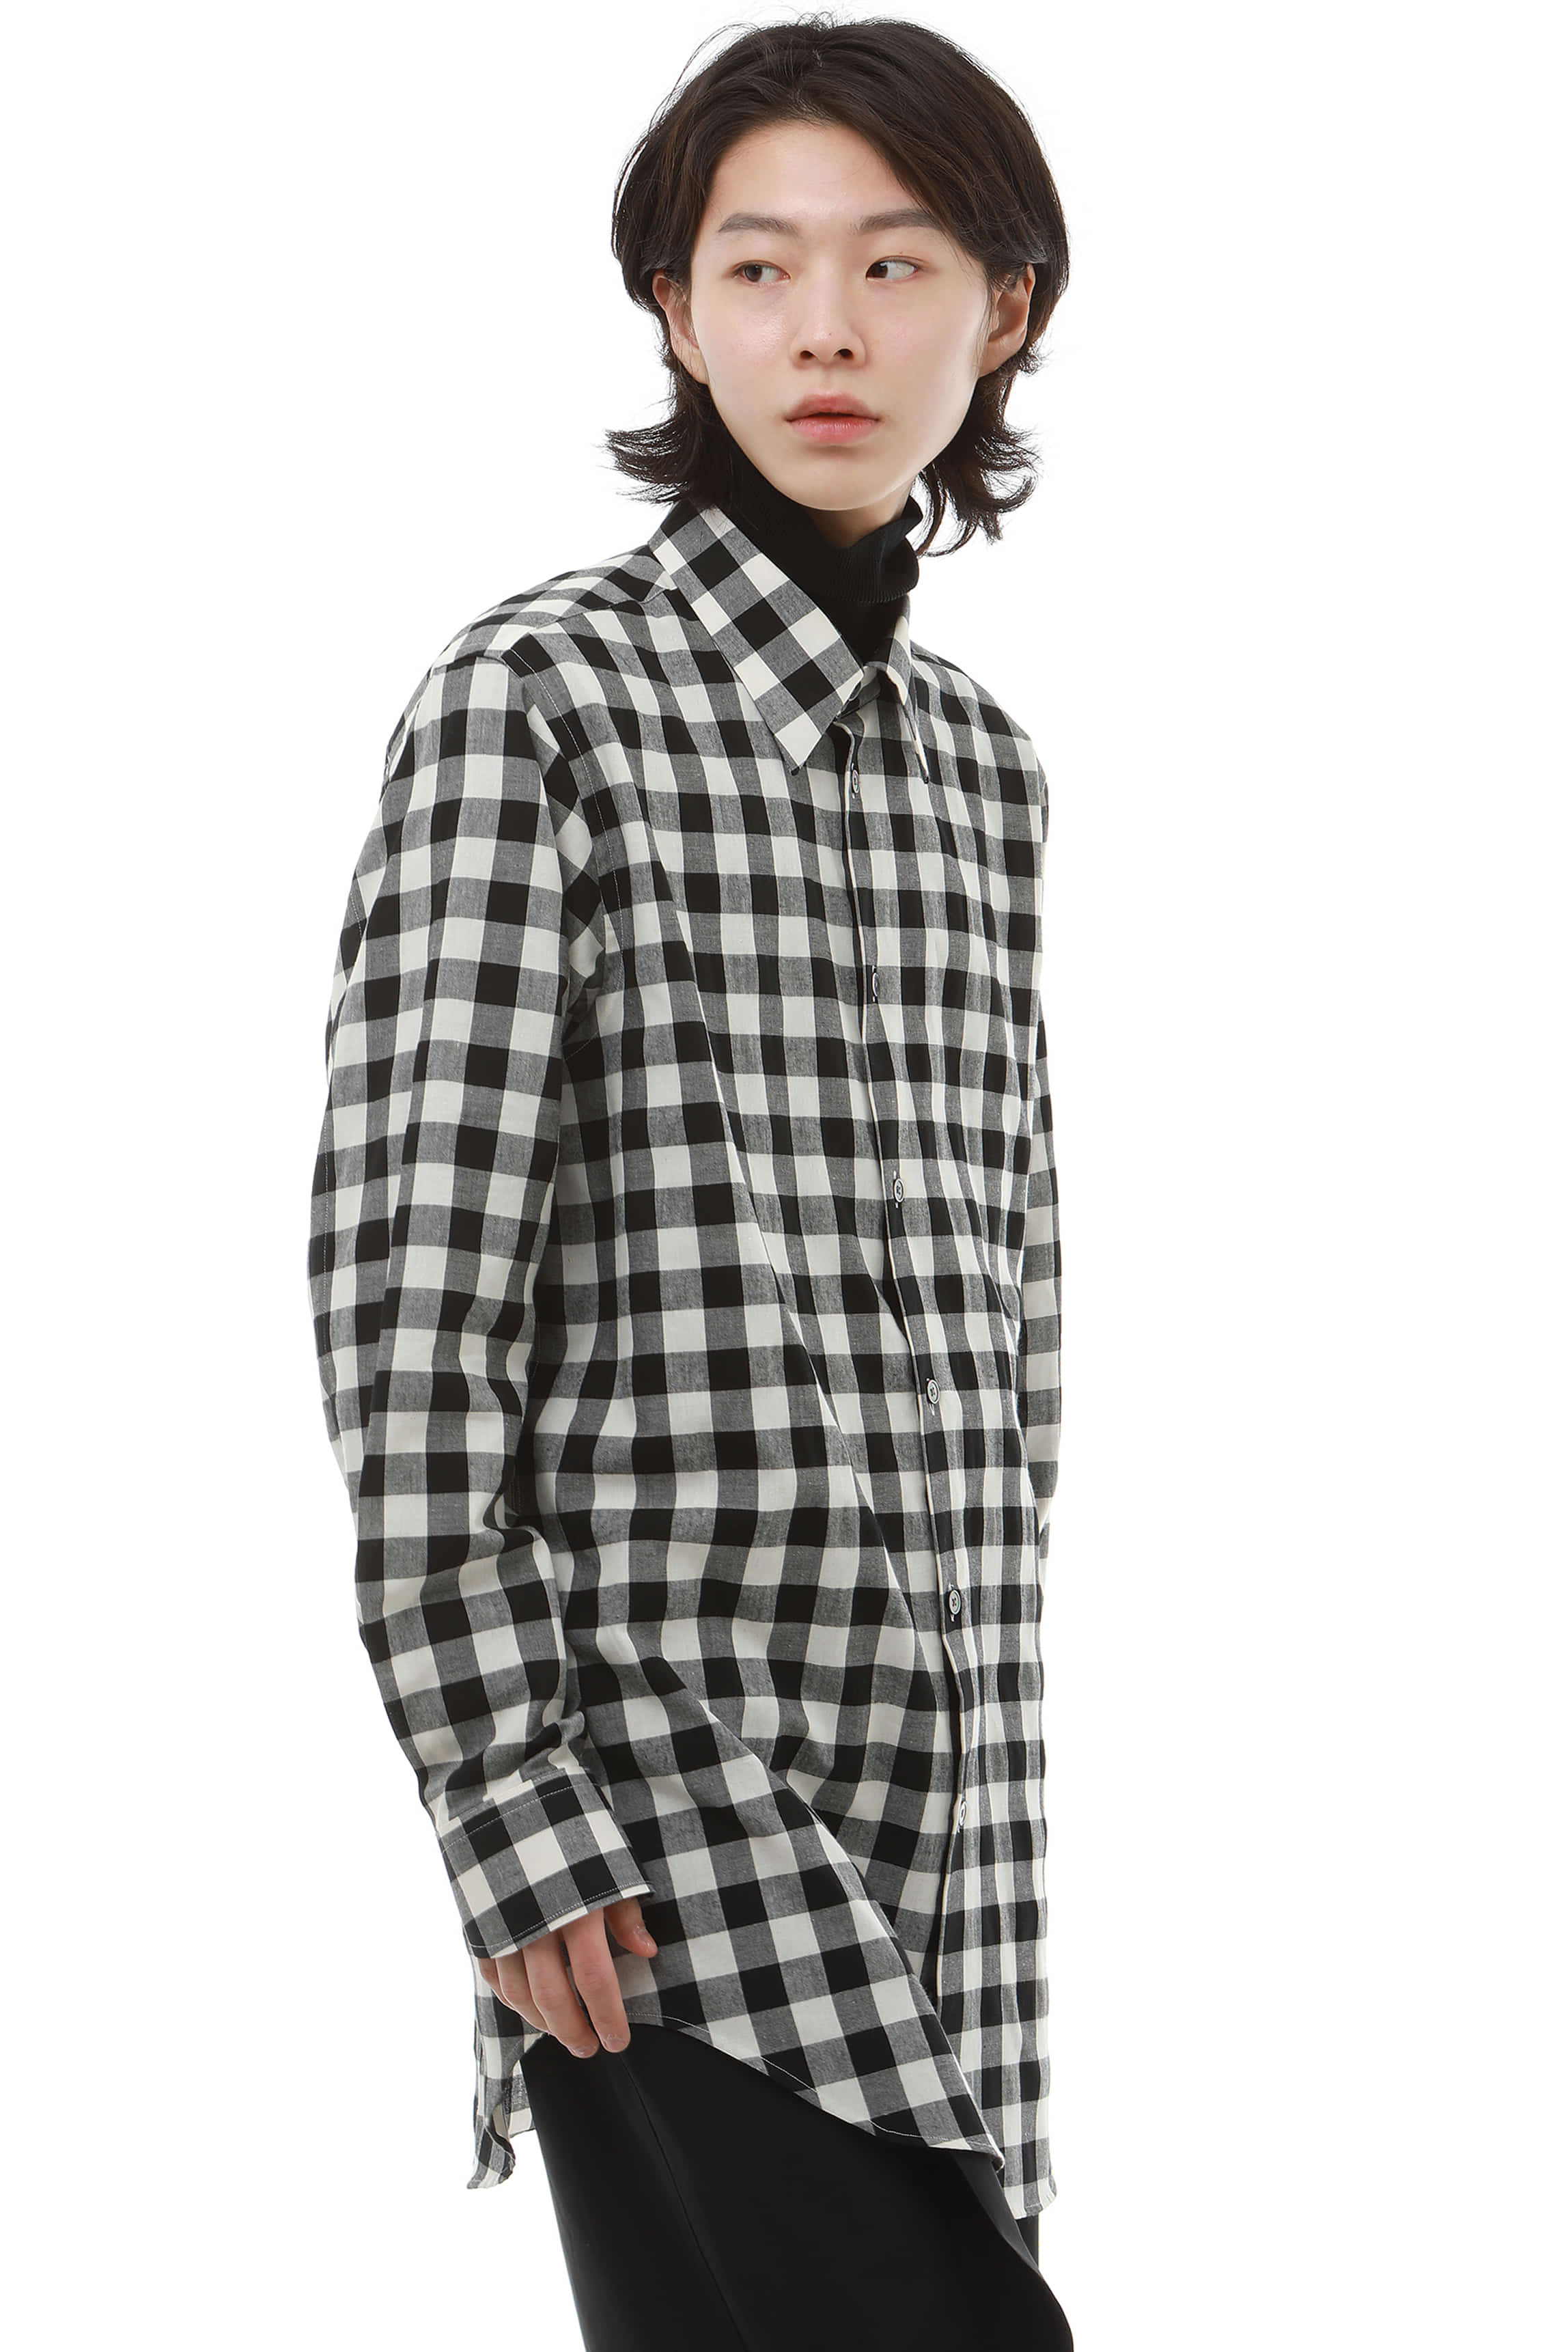 S006 / Black Check Long Shirts